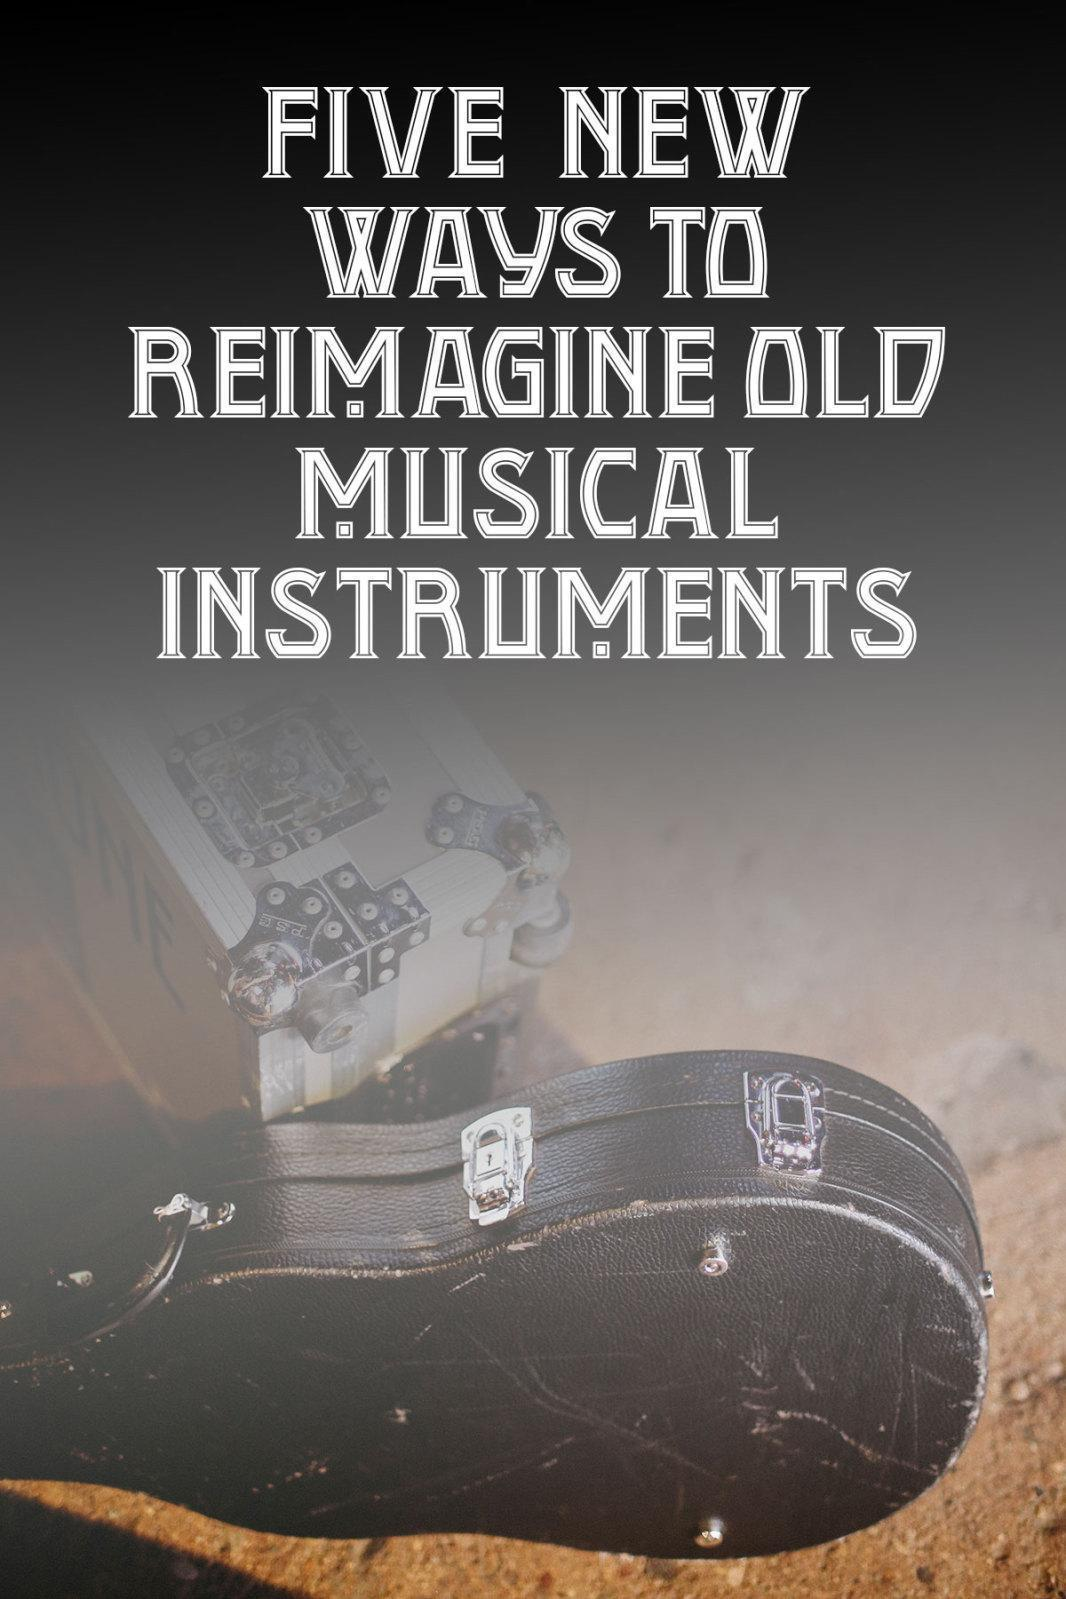 5 New Ways to Reimagine Old Musical Instruments